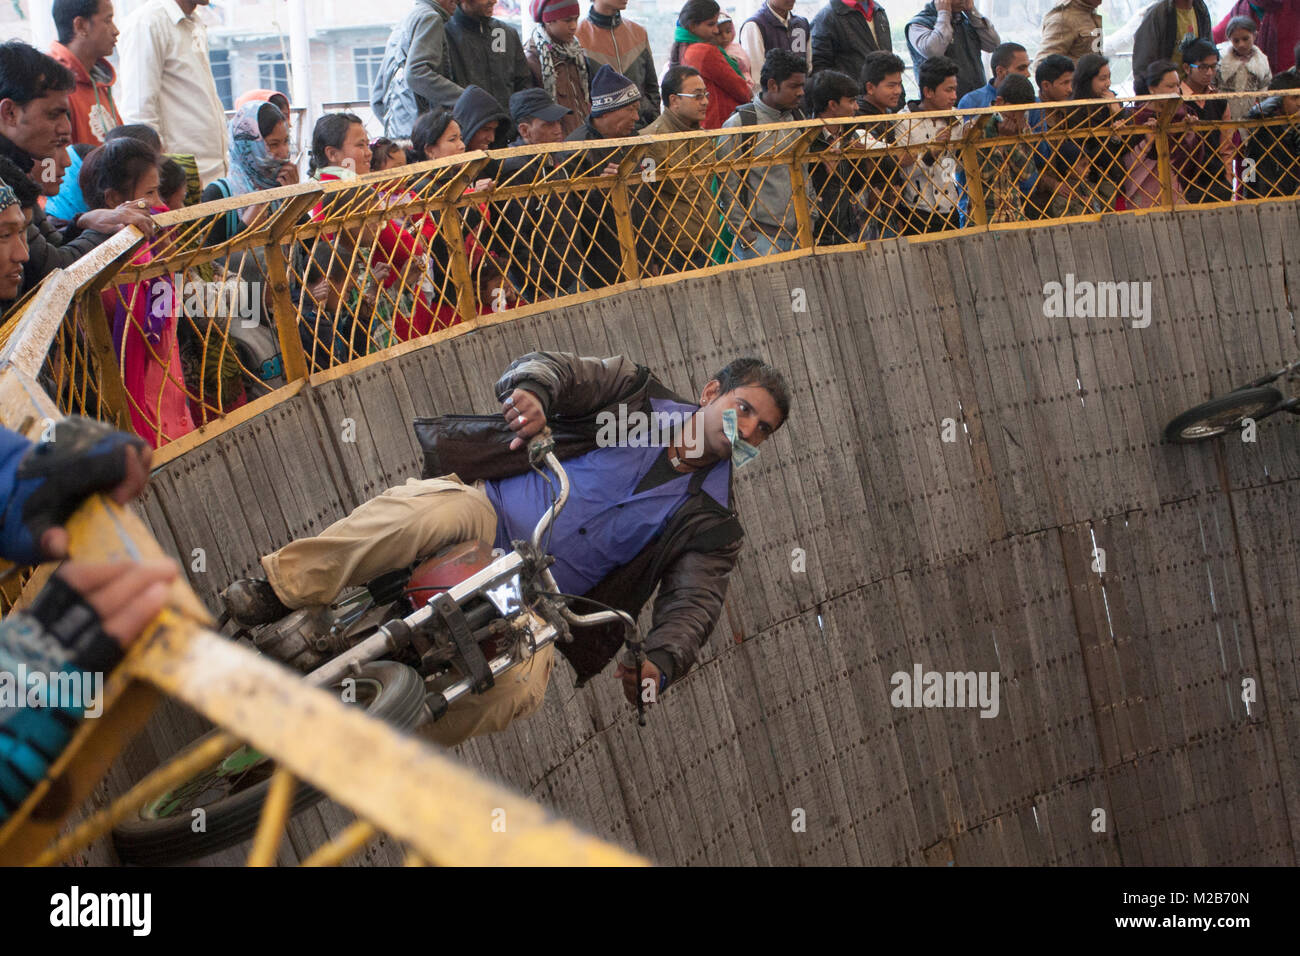 A biker performs stunt in a circus called death of bowls in Nepal. Stock Photo